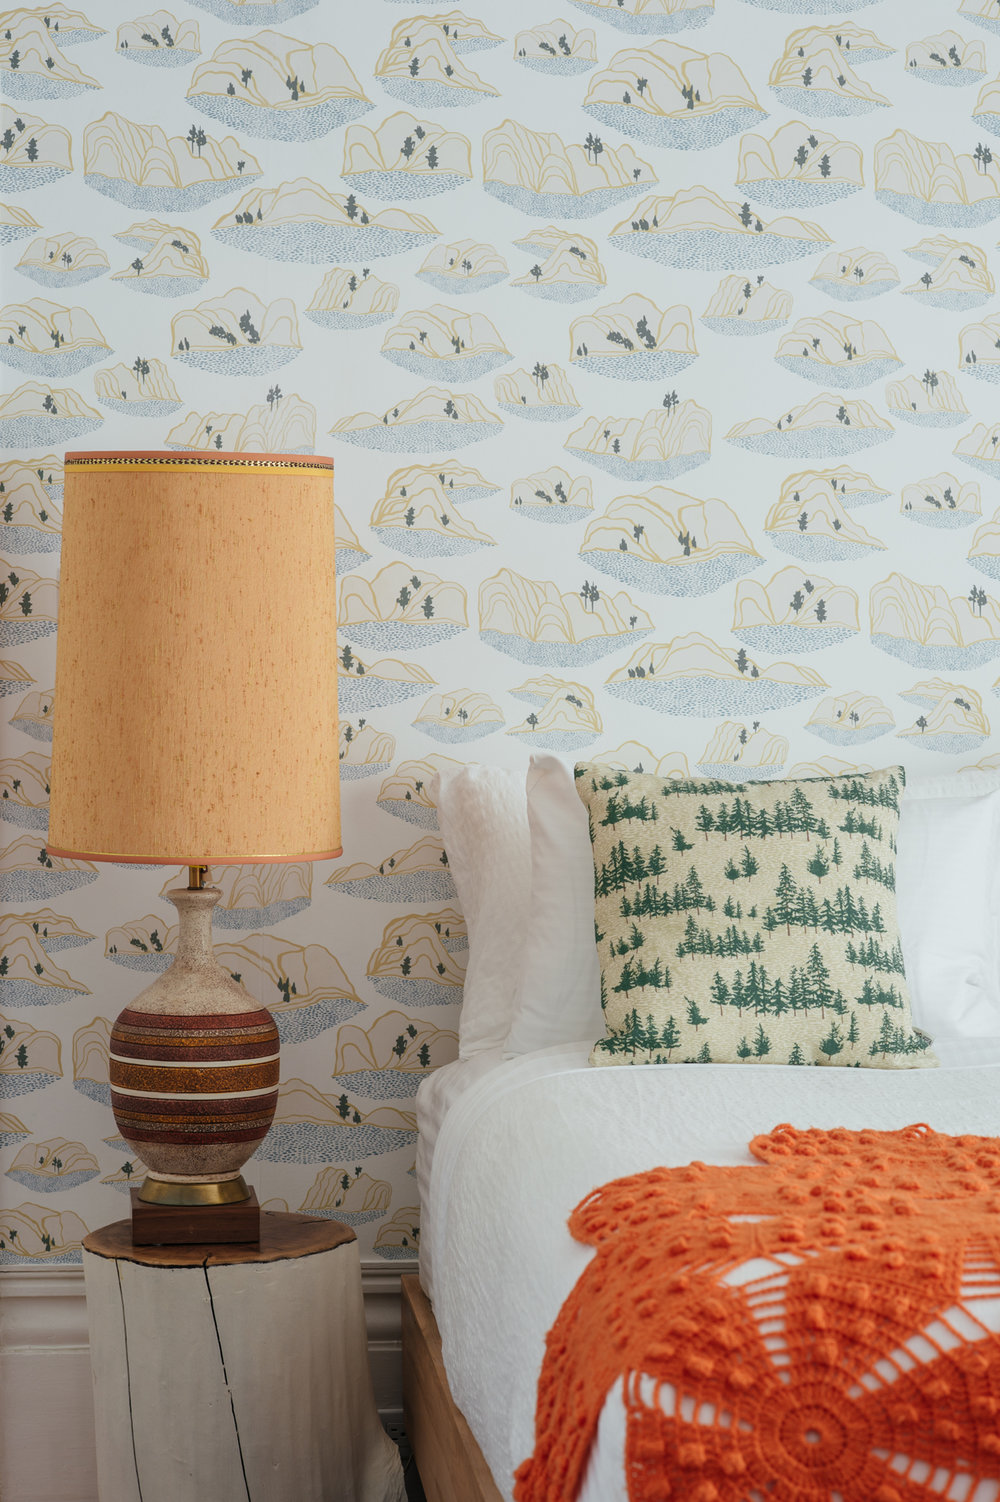 Kate Golding Sand Dunes wallpaper // Modern wallcoverings and interior decor.